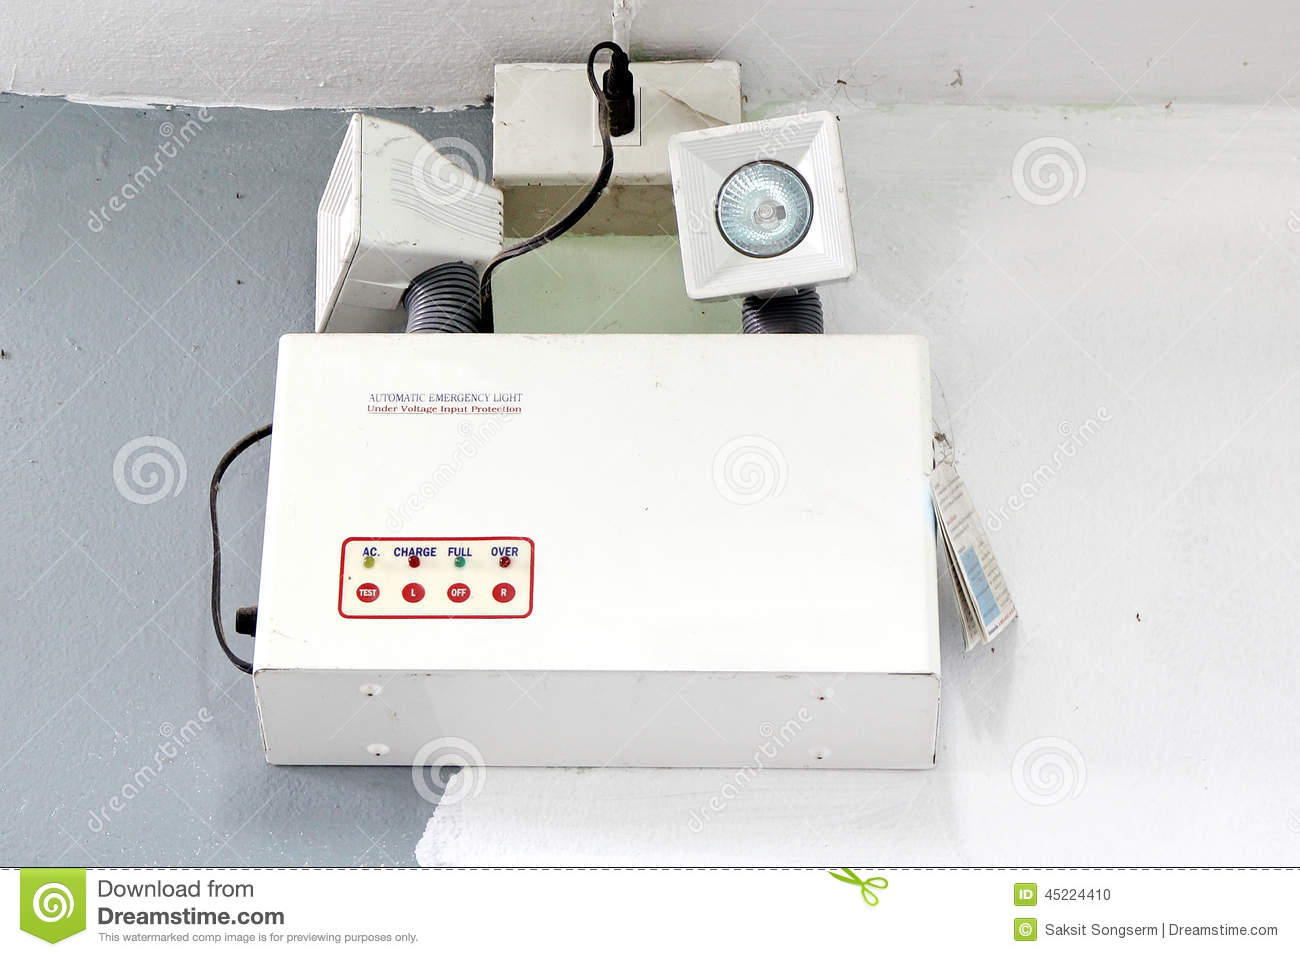 Automatic Emergency Ligth Stock Photo Image Of Install 45224410 Low Cost Ligh